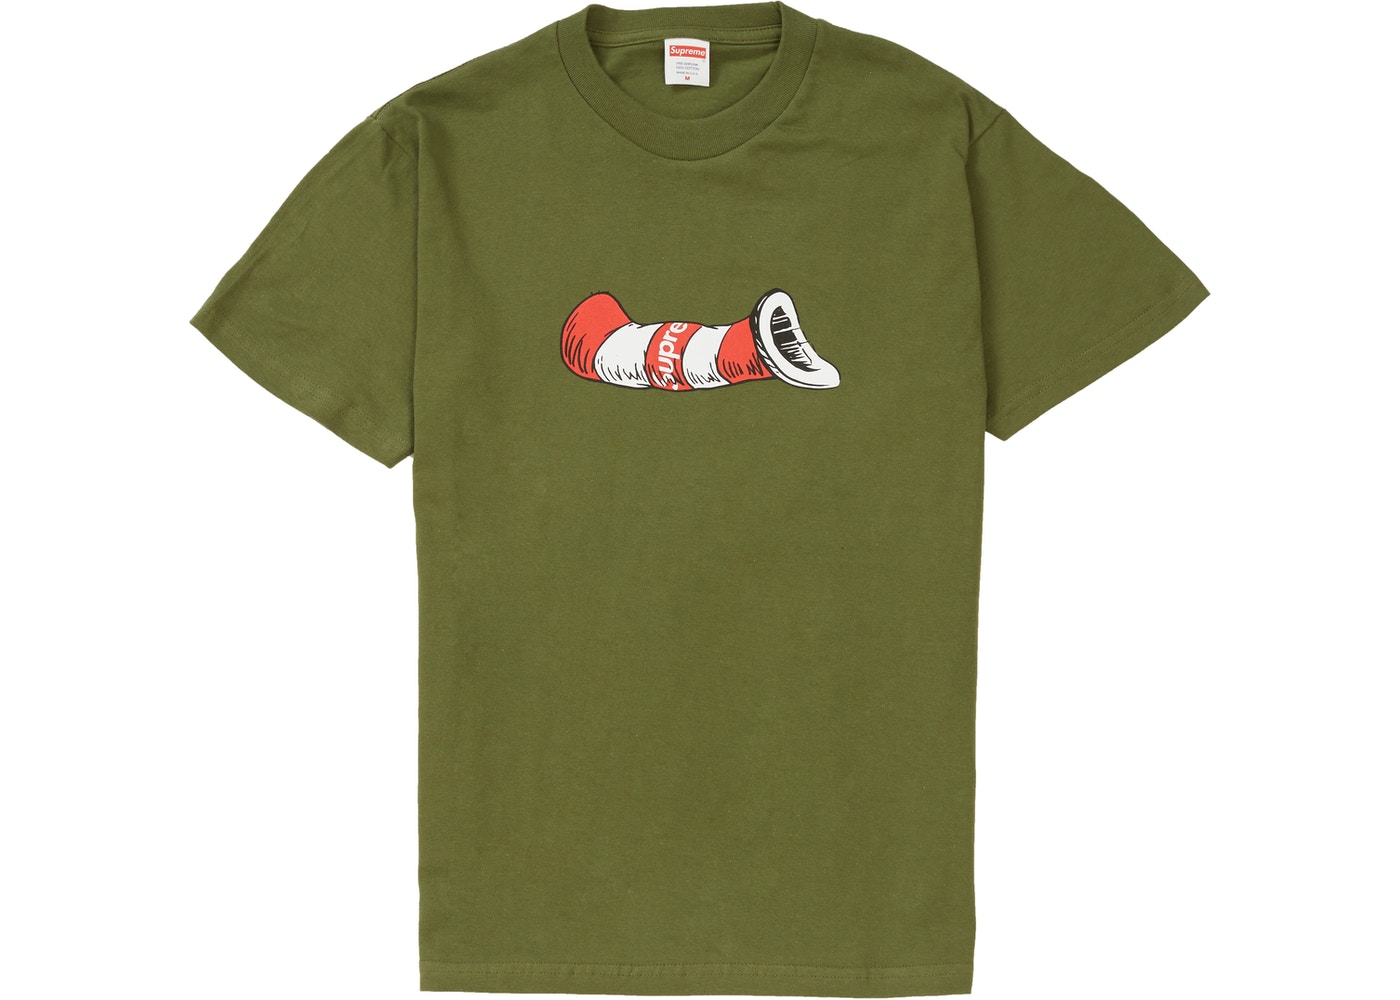 76baa99115c3 Supreme Cat in the Hat Tee Olive - FW18